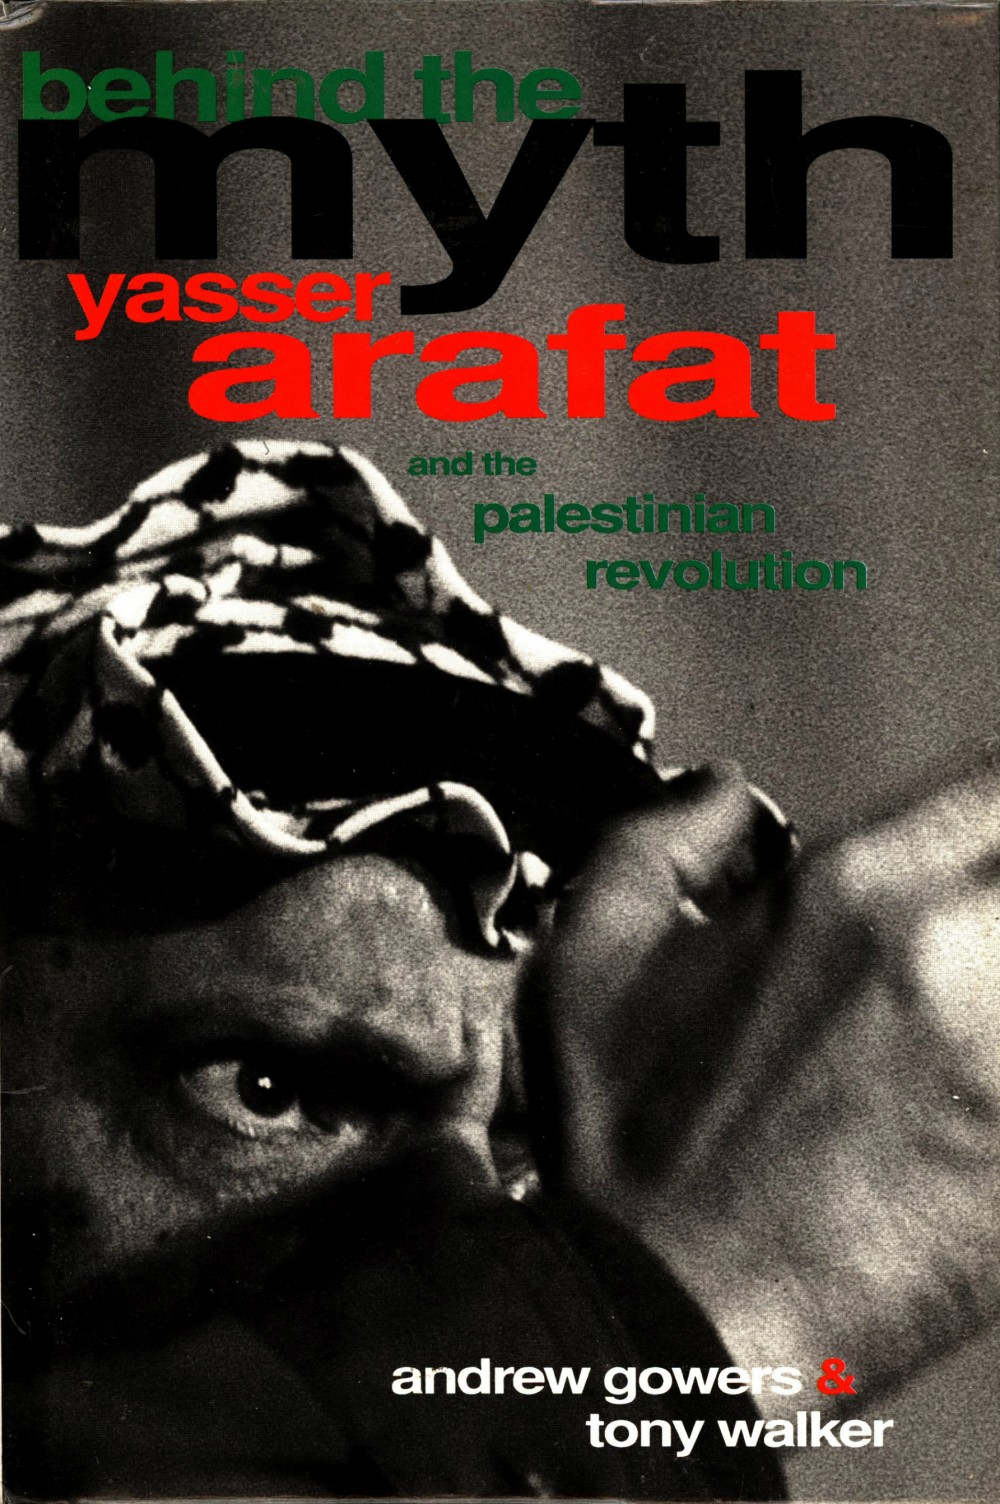 Andrew Gowers, Tony Walker: Behind the Myth - Yasser Arafat and the Palestinian Revolution